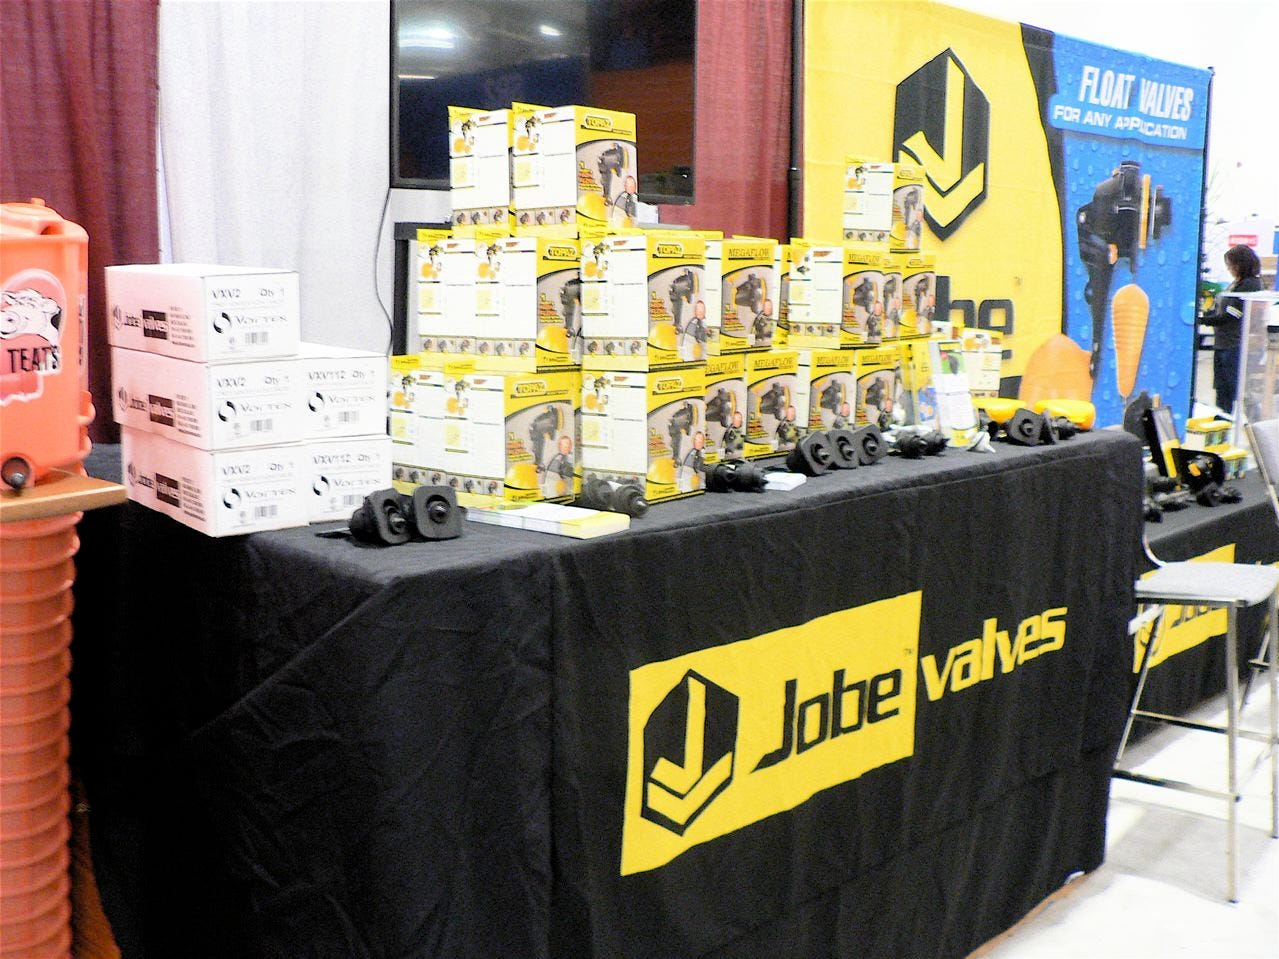 Finished putting up the exhibit of Jobe Valves.